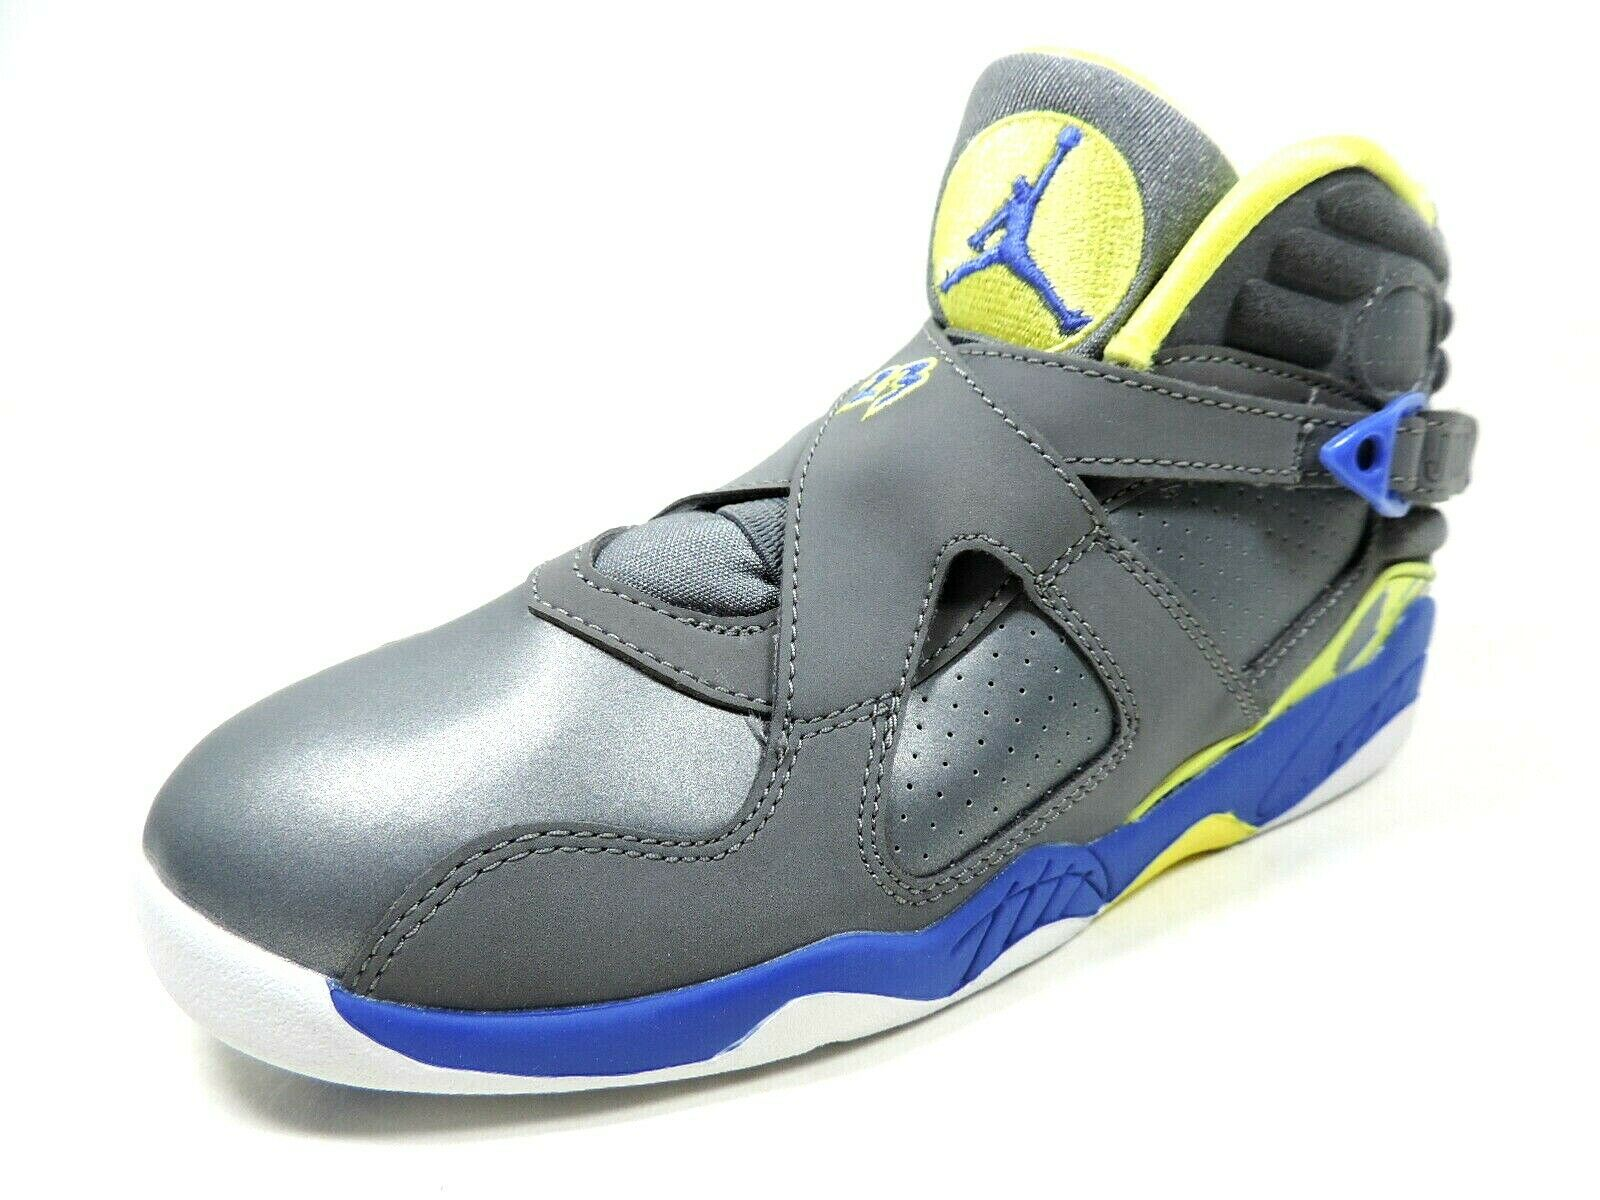 Jordan 8 Retro (PS) Basketball Girls Shoes Leather 580529 037 Cool Grey/Yellow